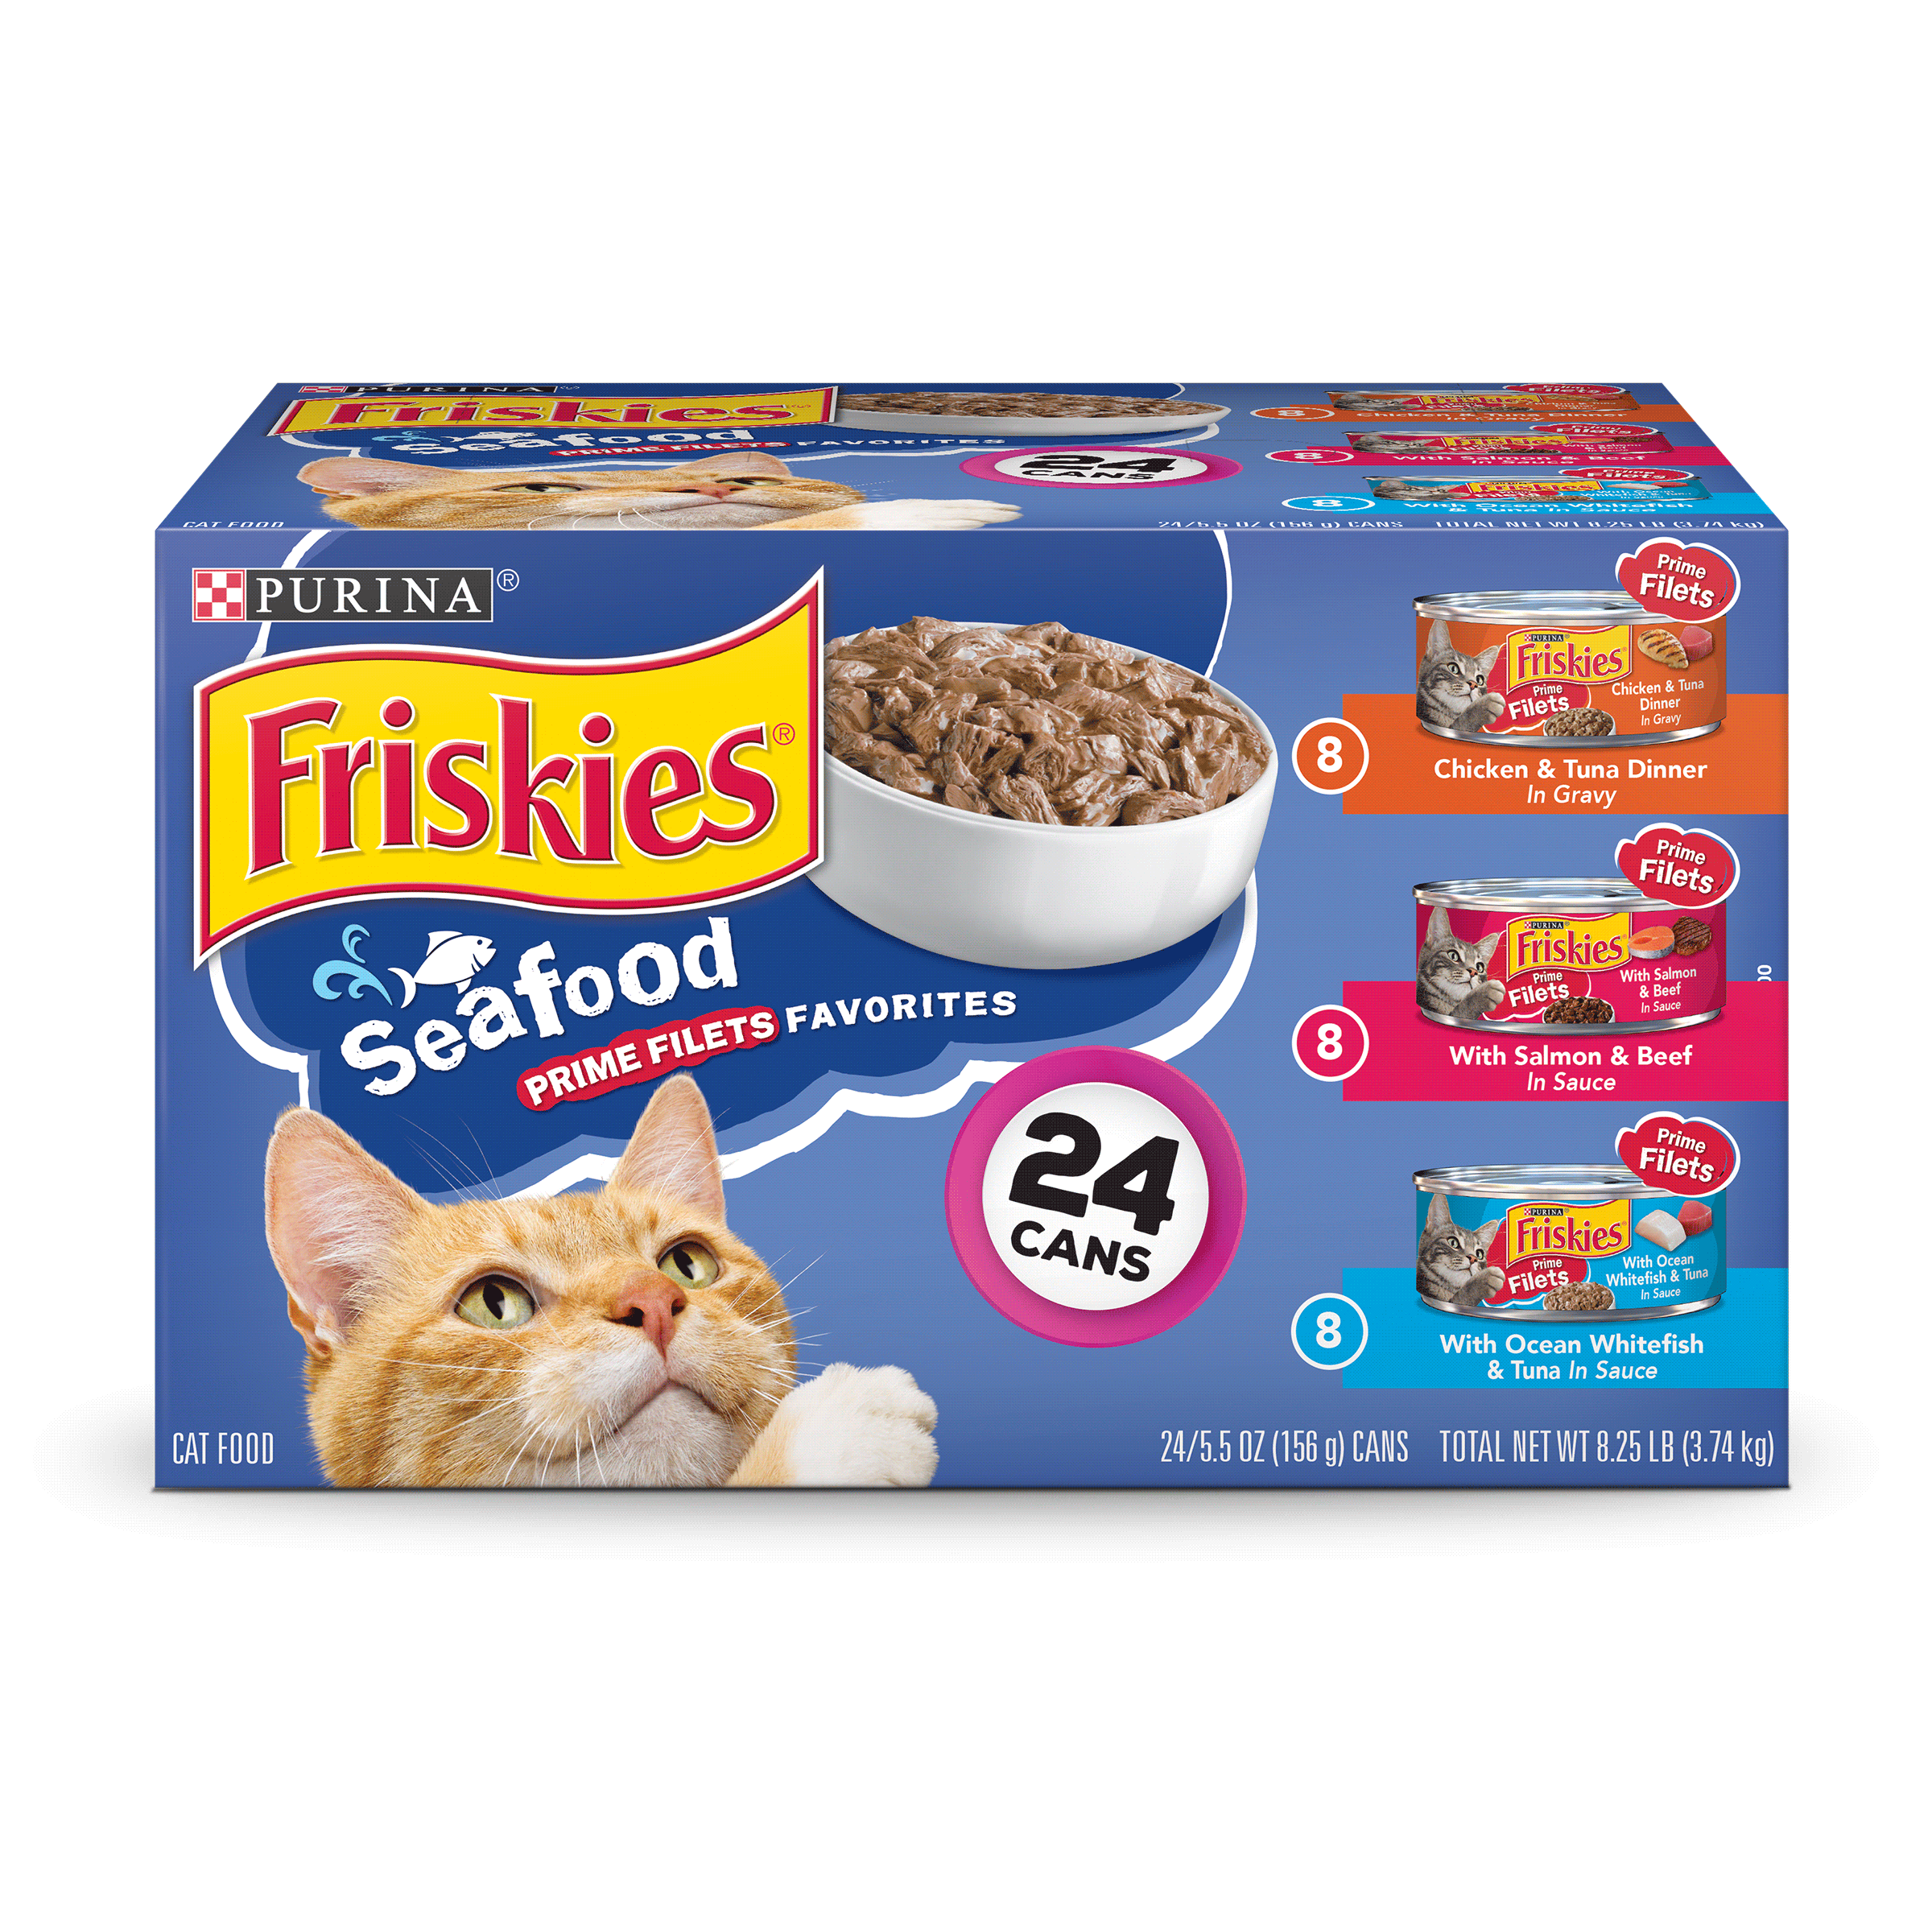 Purina Friskies Prime Filets Seafood Favorites Adult Wet Cat Food Variety Pack - (24) 5.5 oz. Cans